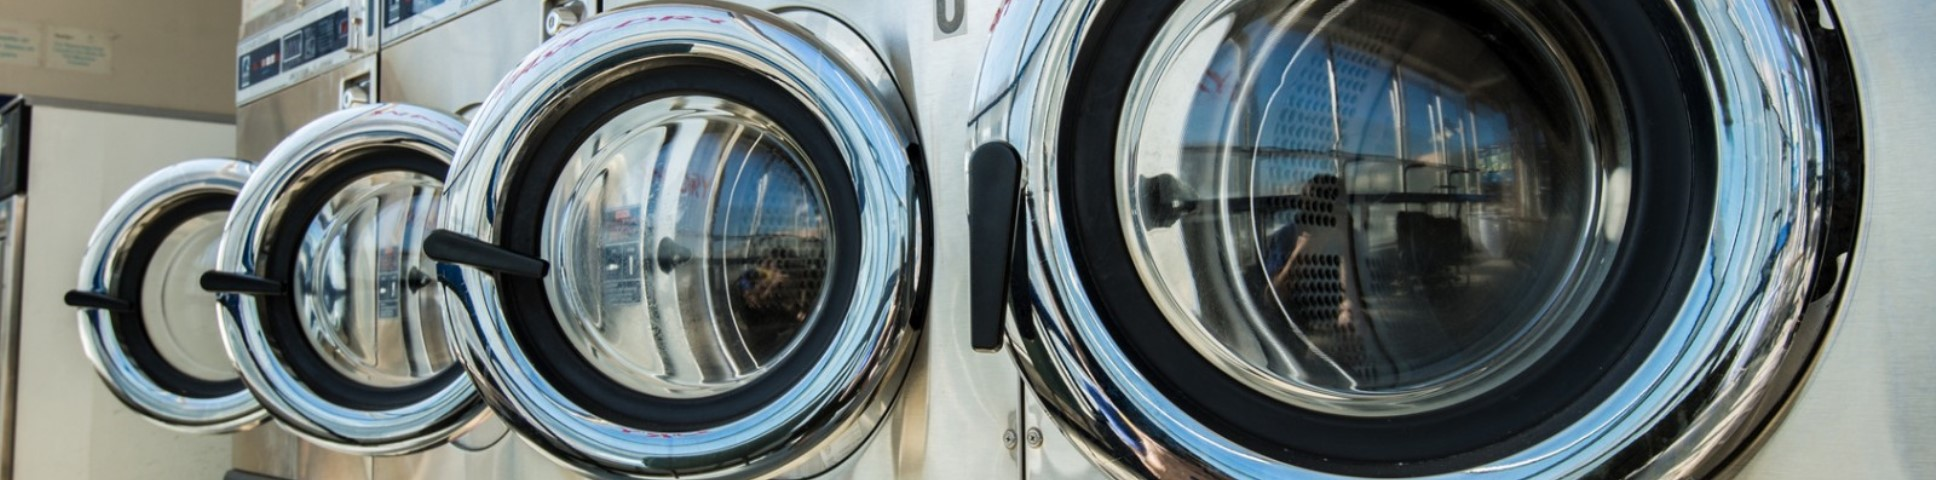 Fort Walton Beach Laundry Services